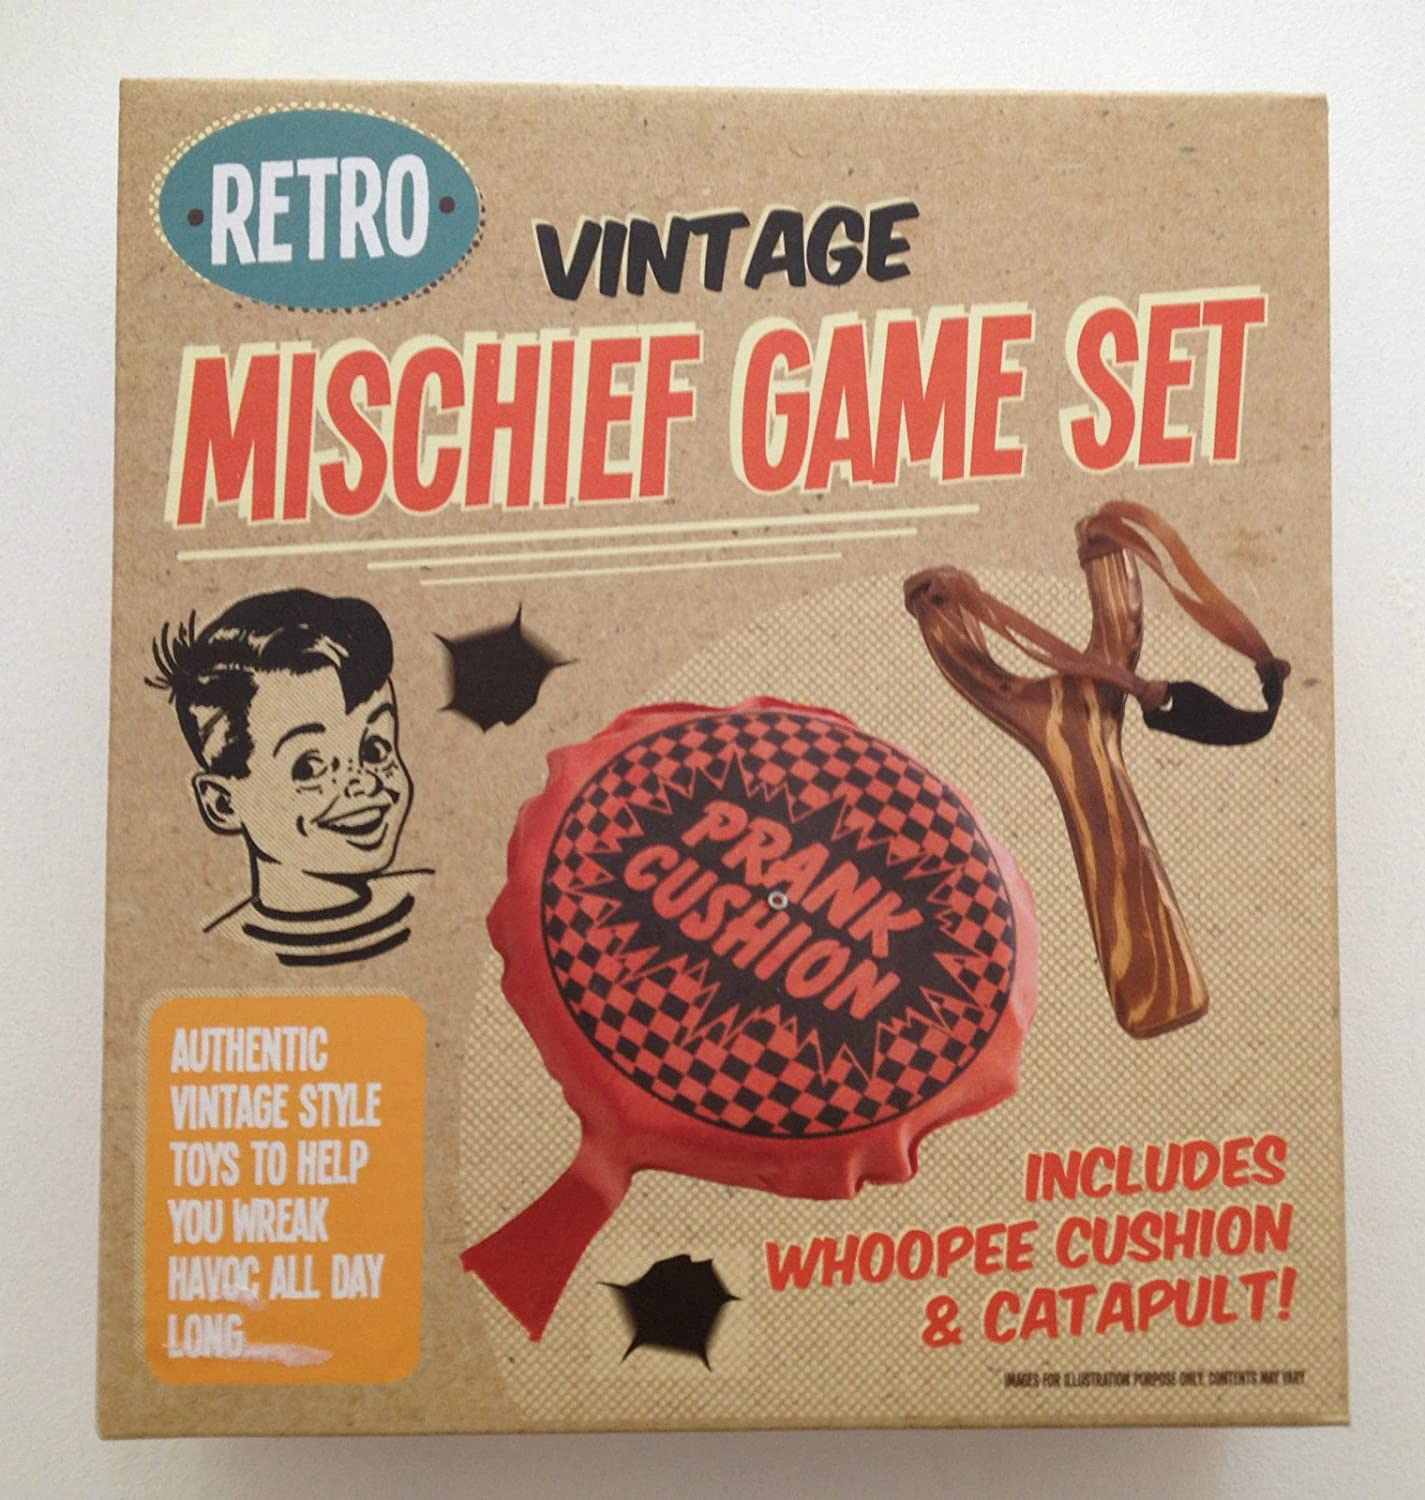 Retro Vintage Mischief Game set include Petofoni & catapulta New Xmas Gift – free P & P